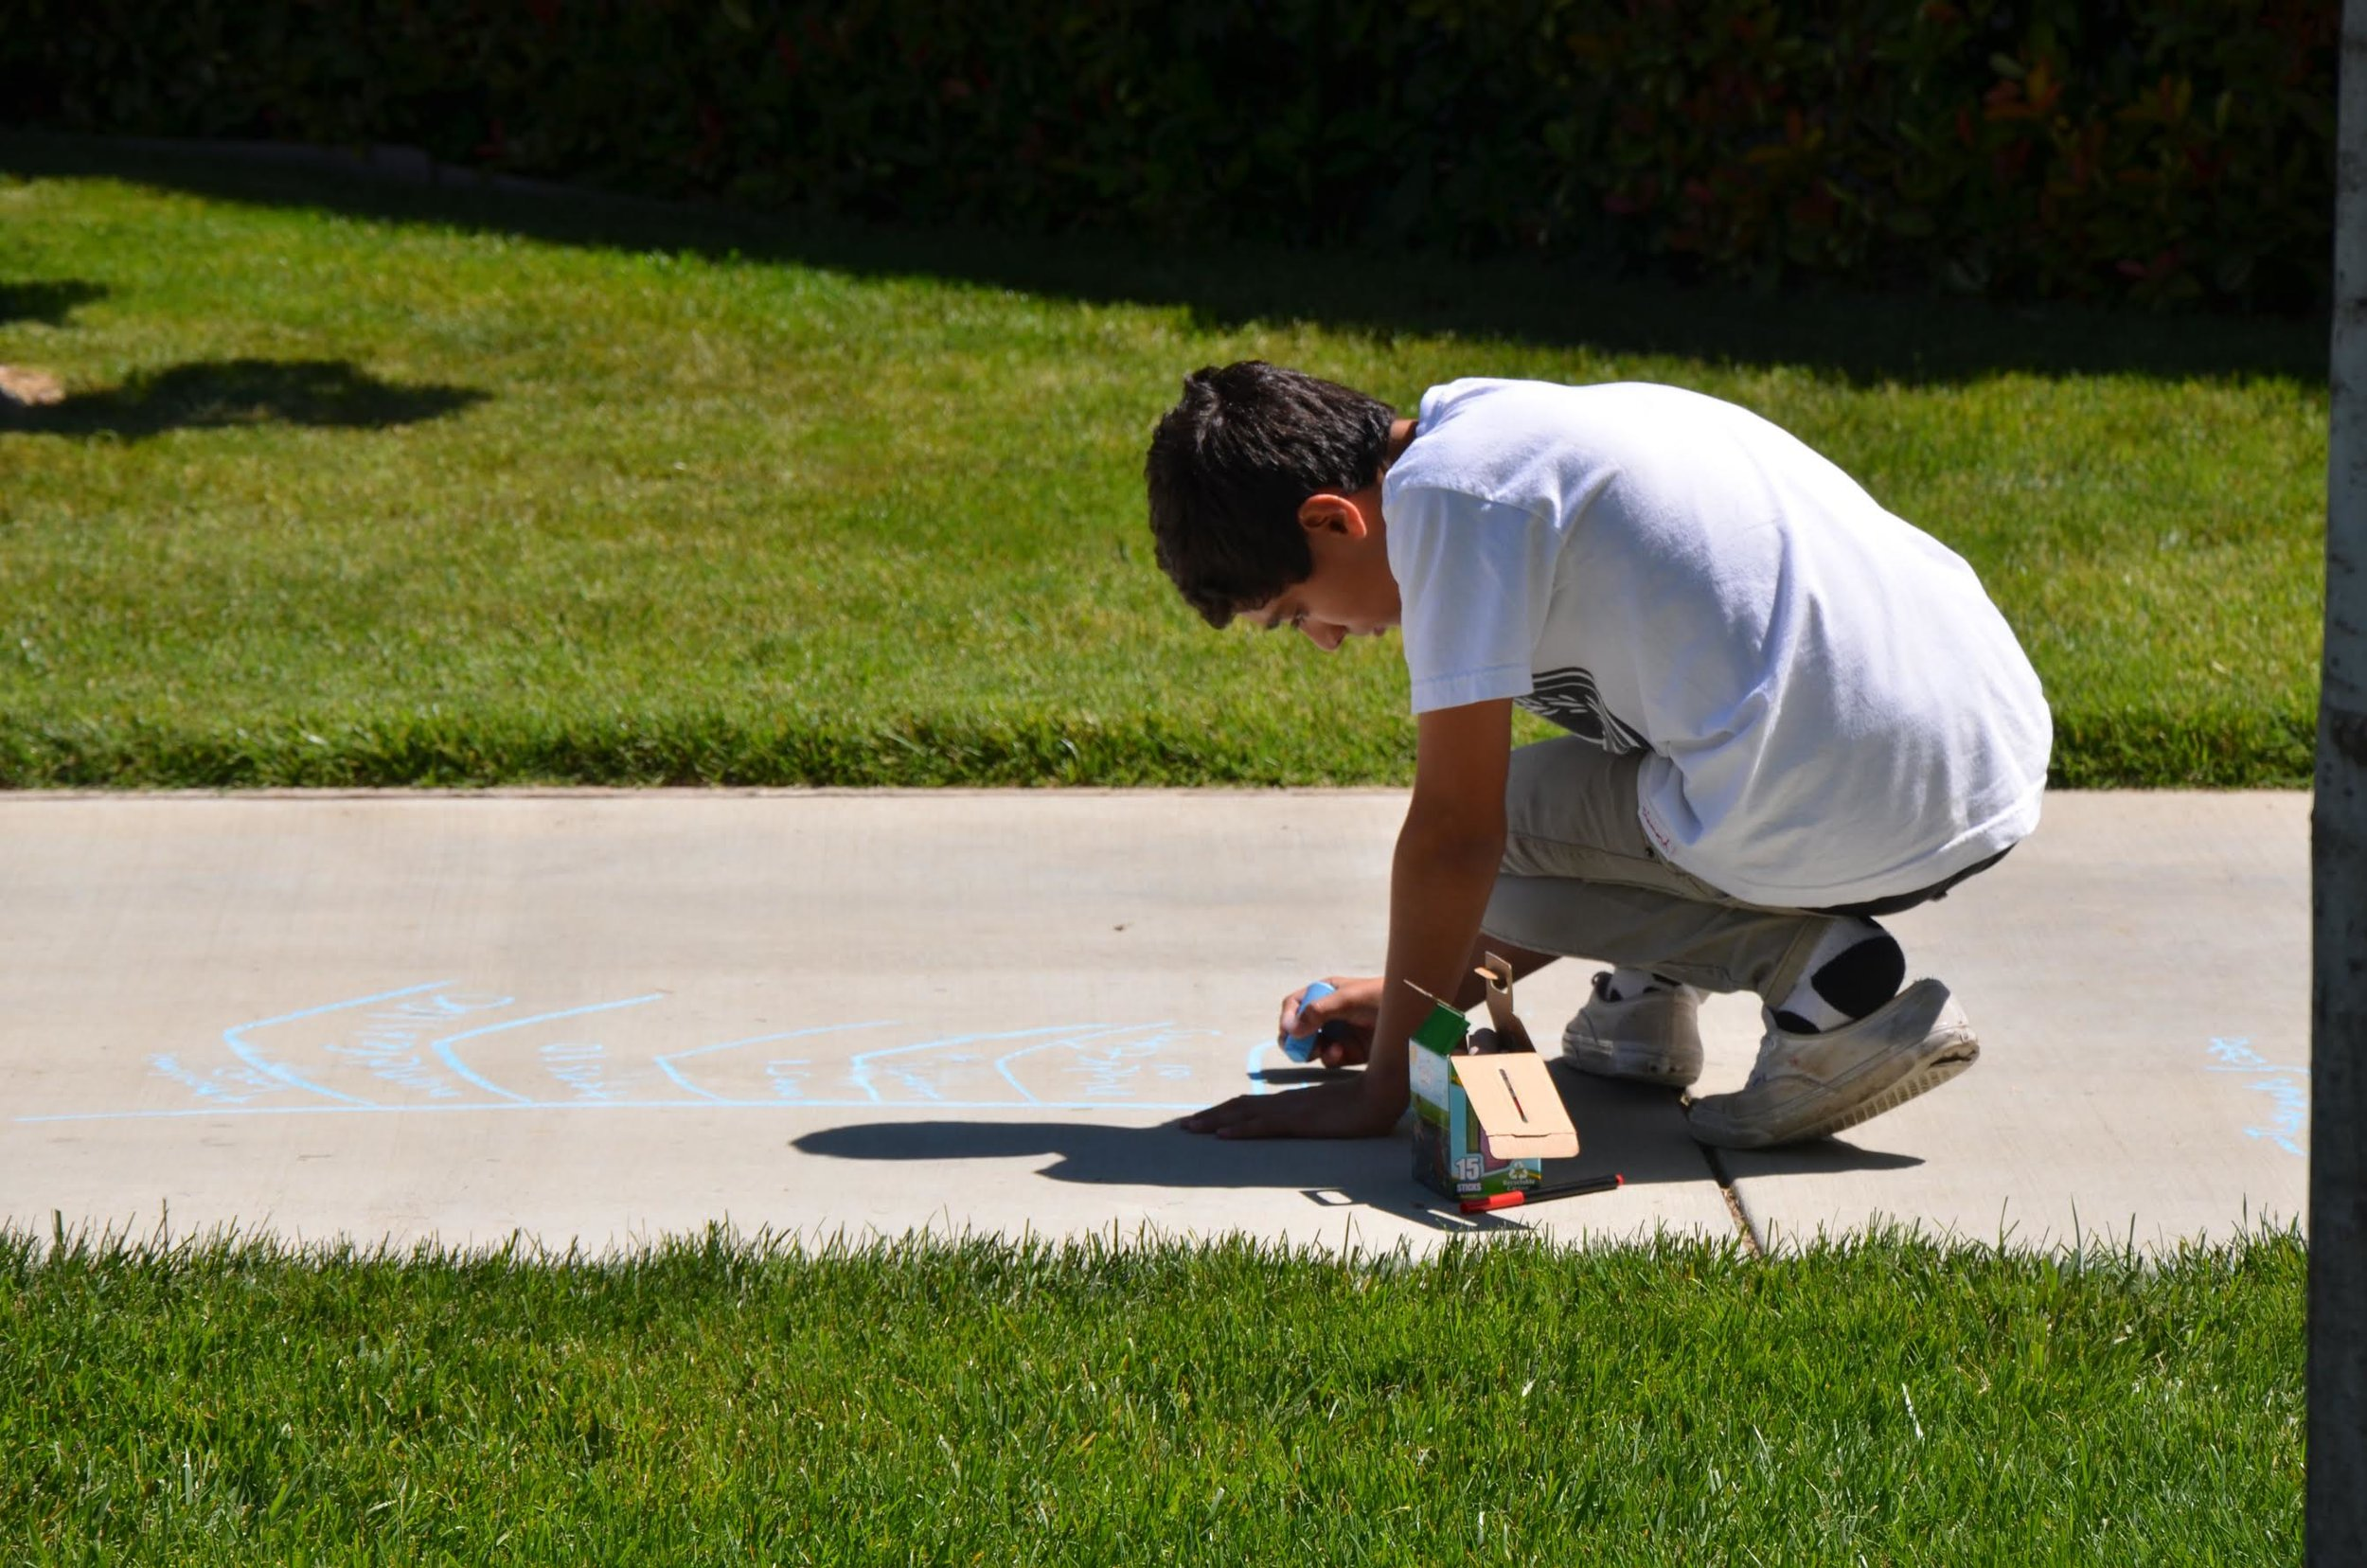 A math student working on place value in a big way